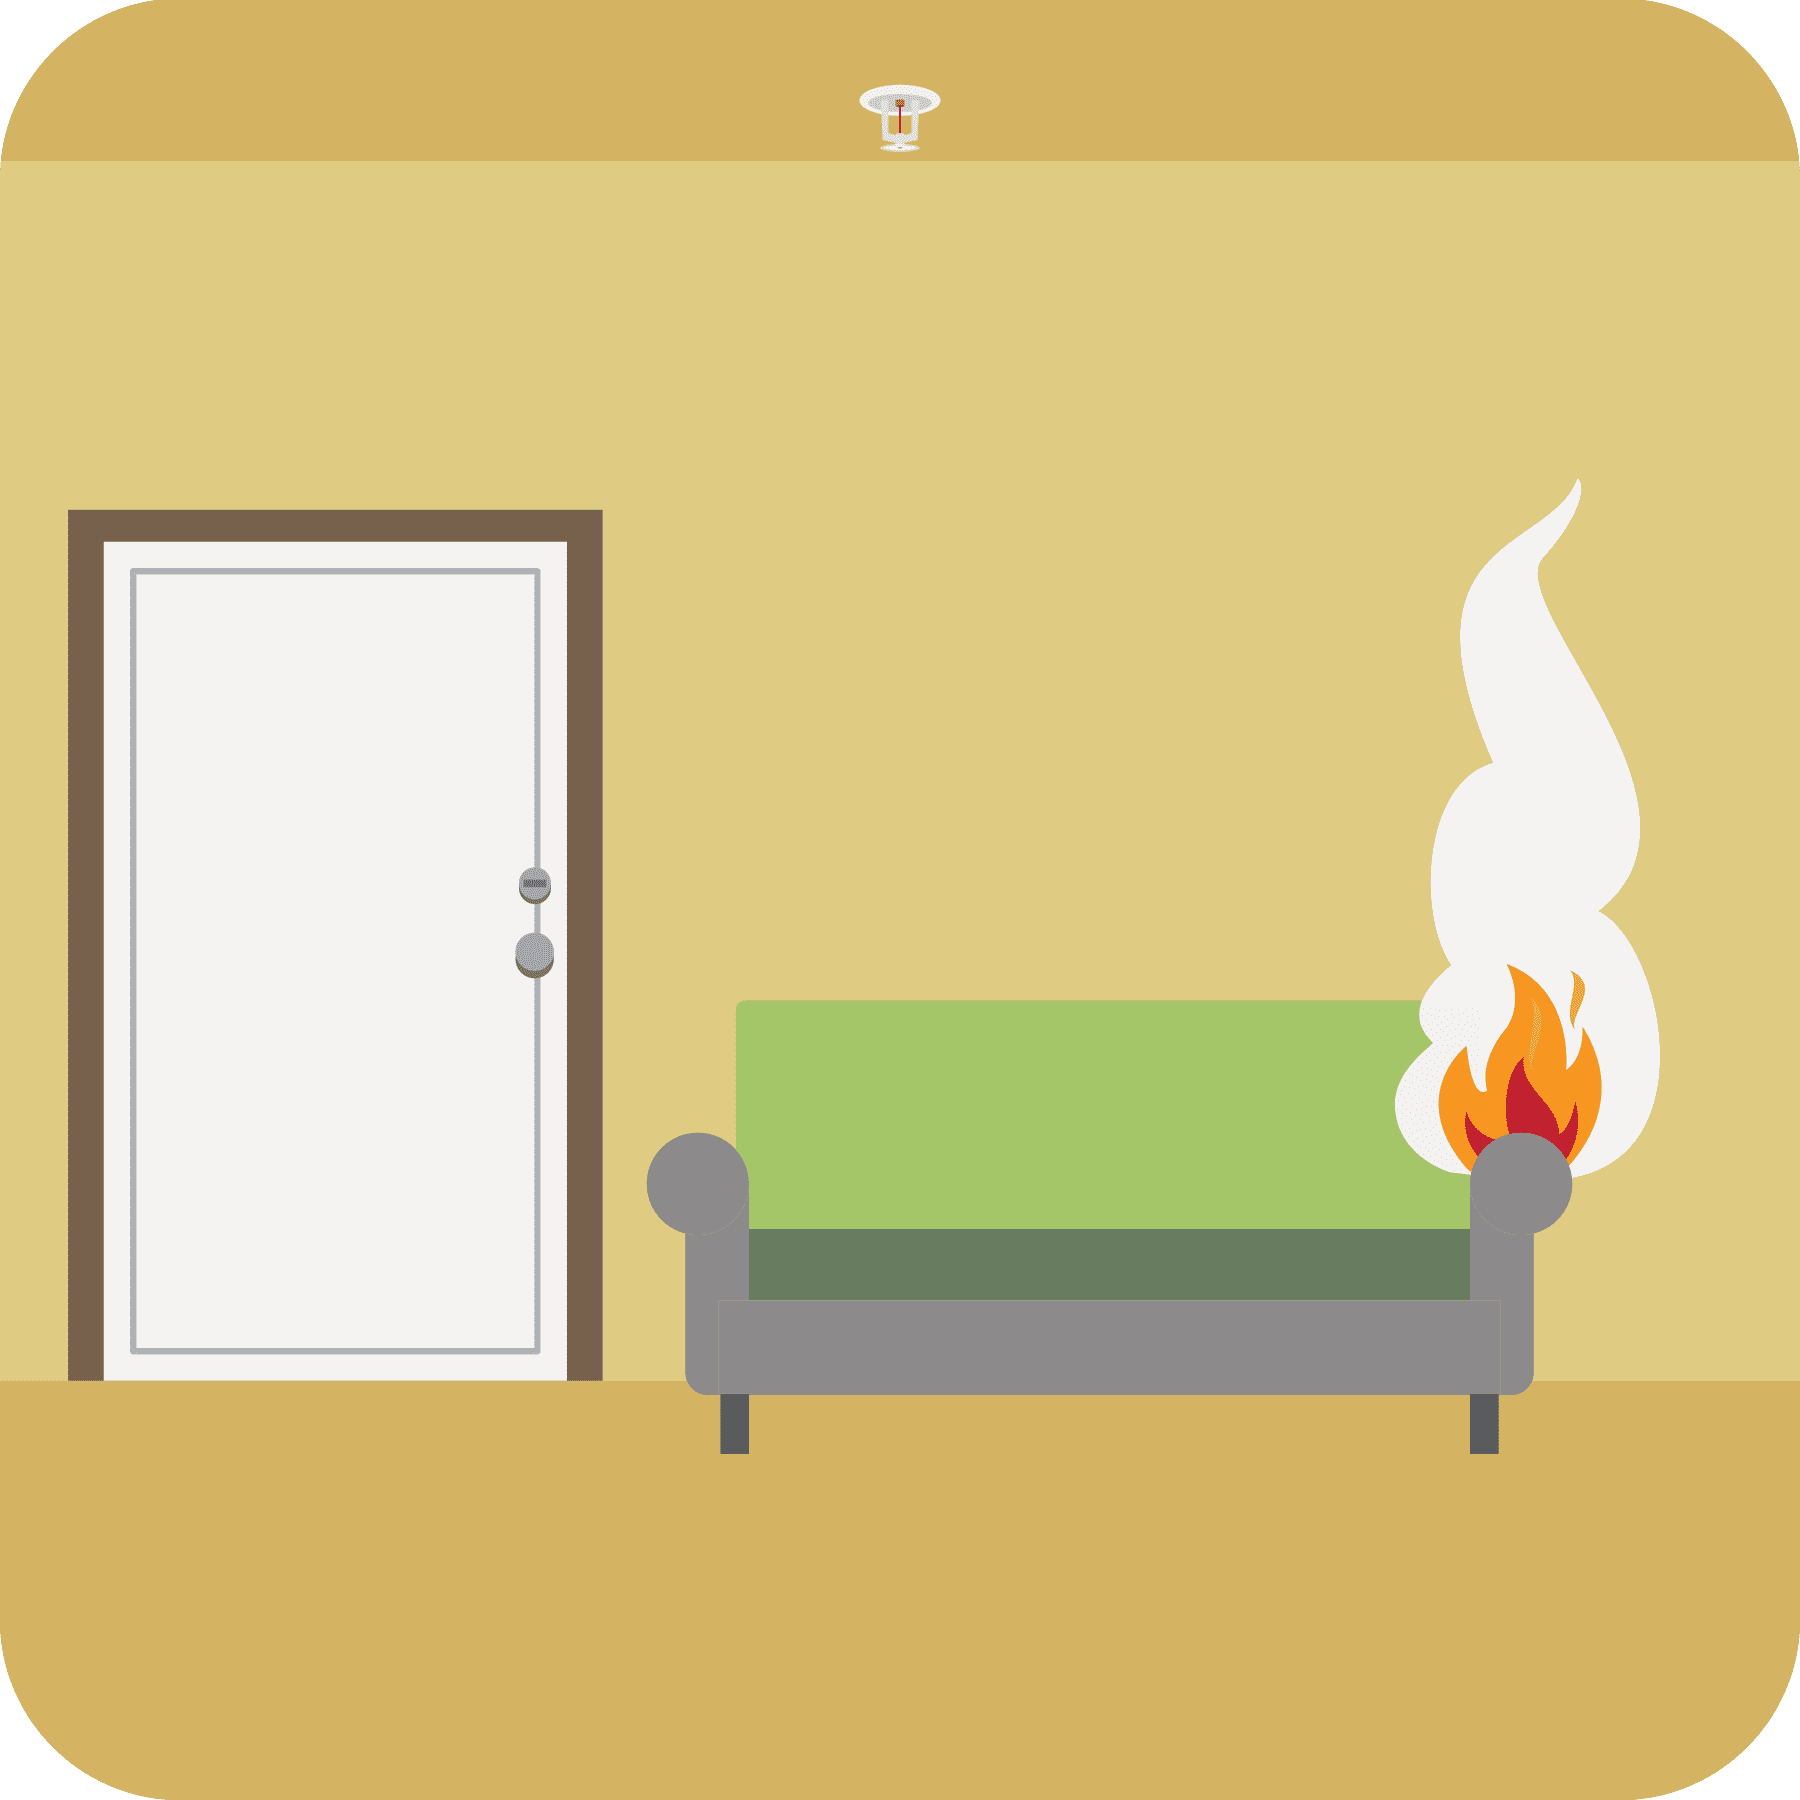 A fire starts on a living room couch.